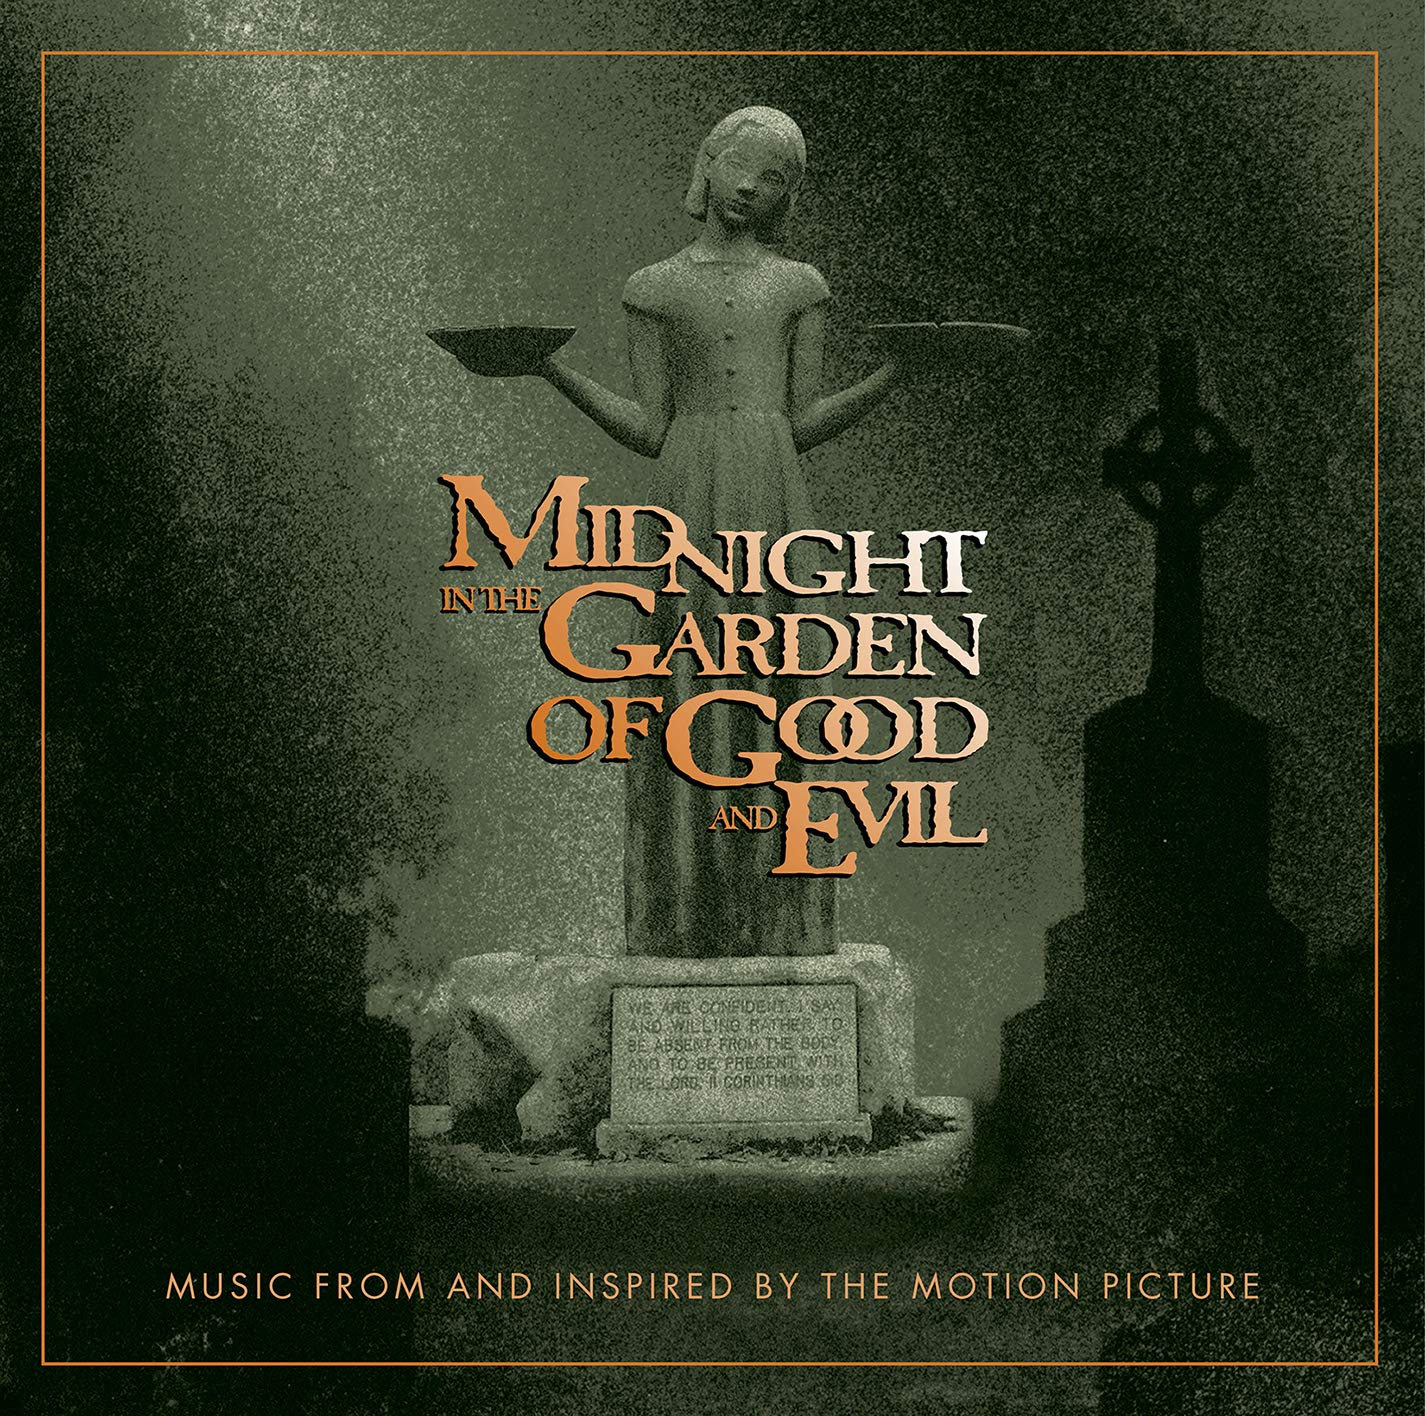 Midnight In the Garden of Good and Evil (Music From and Inspired By The Motion Picture)